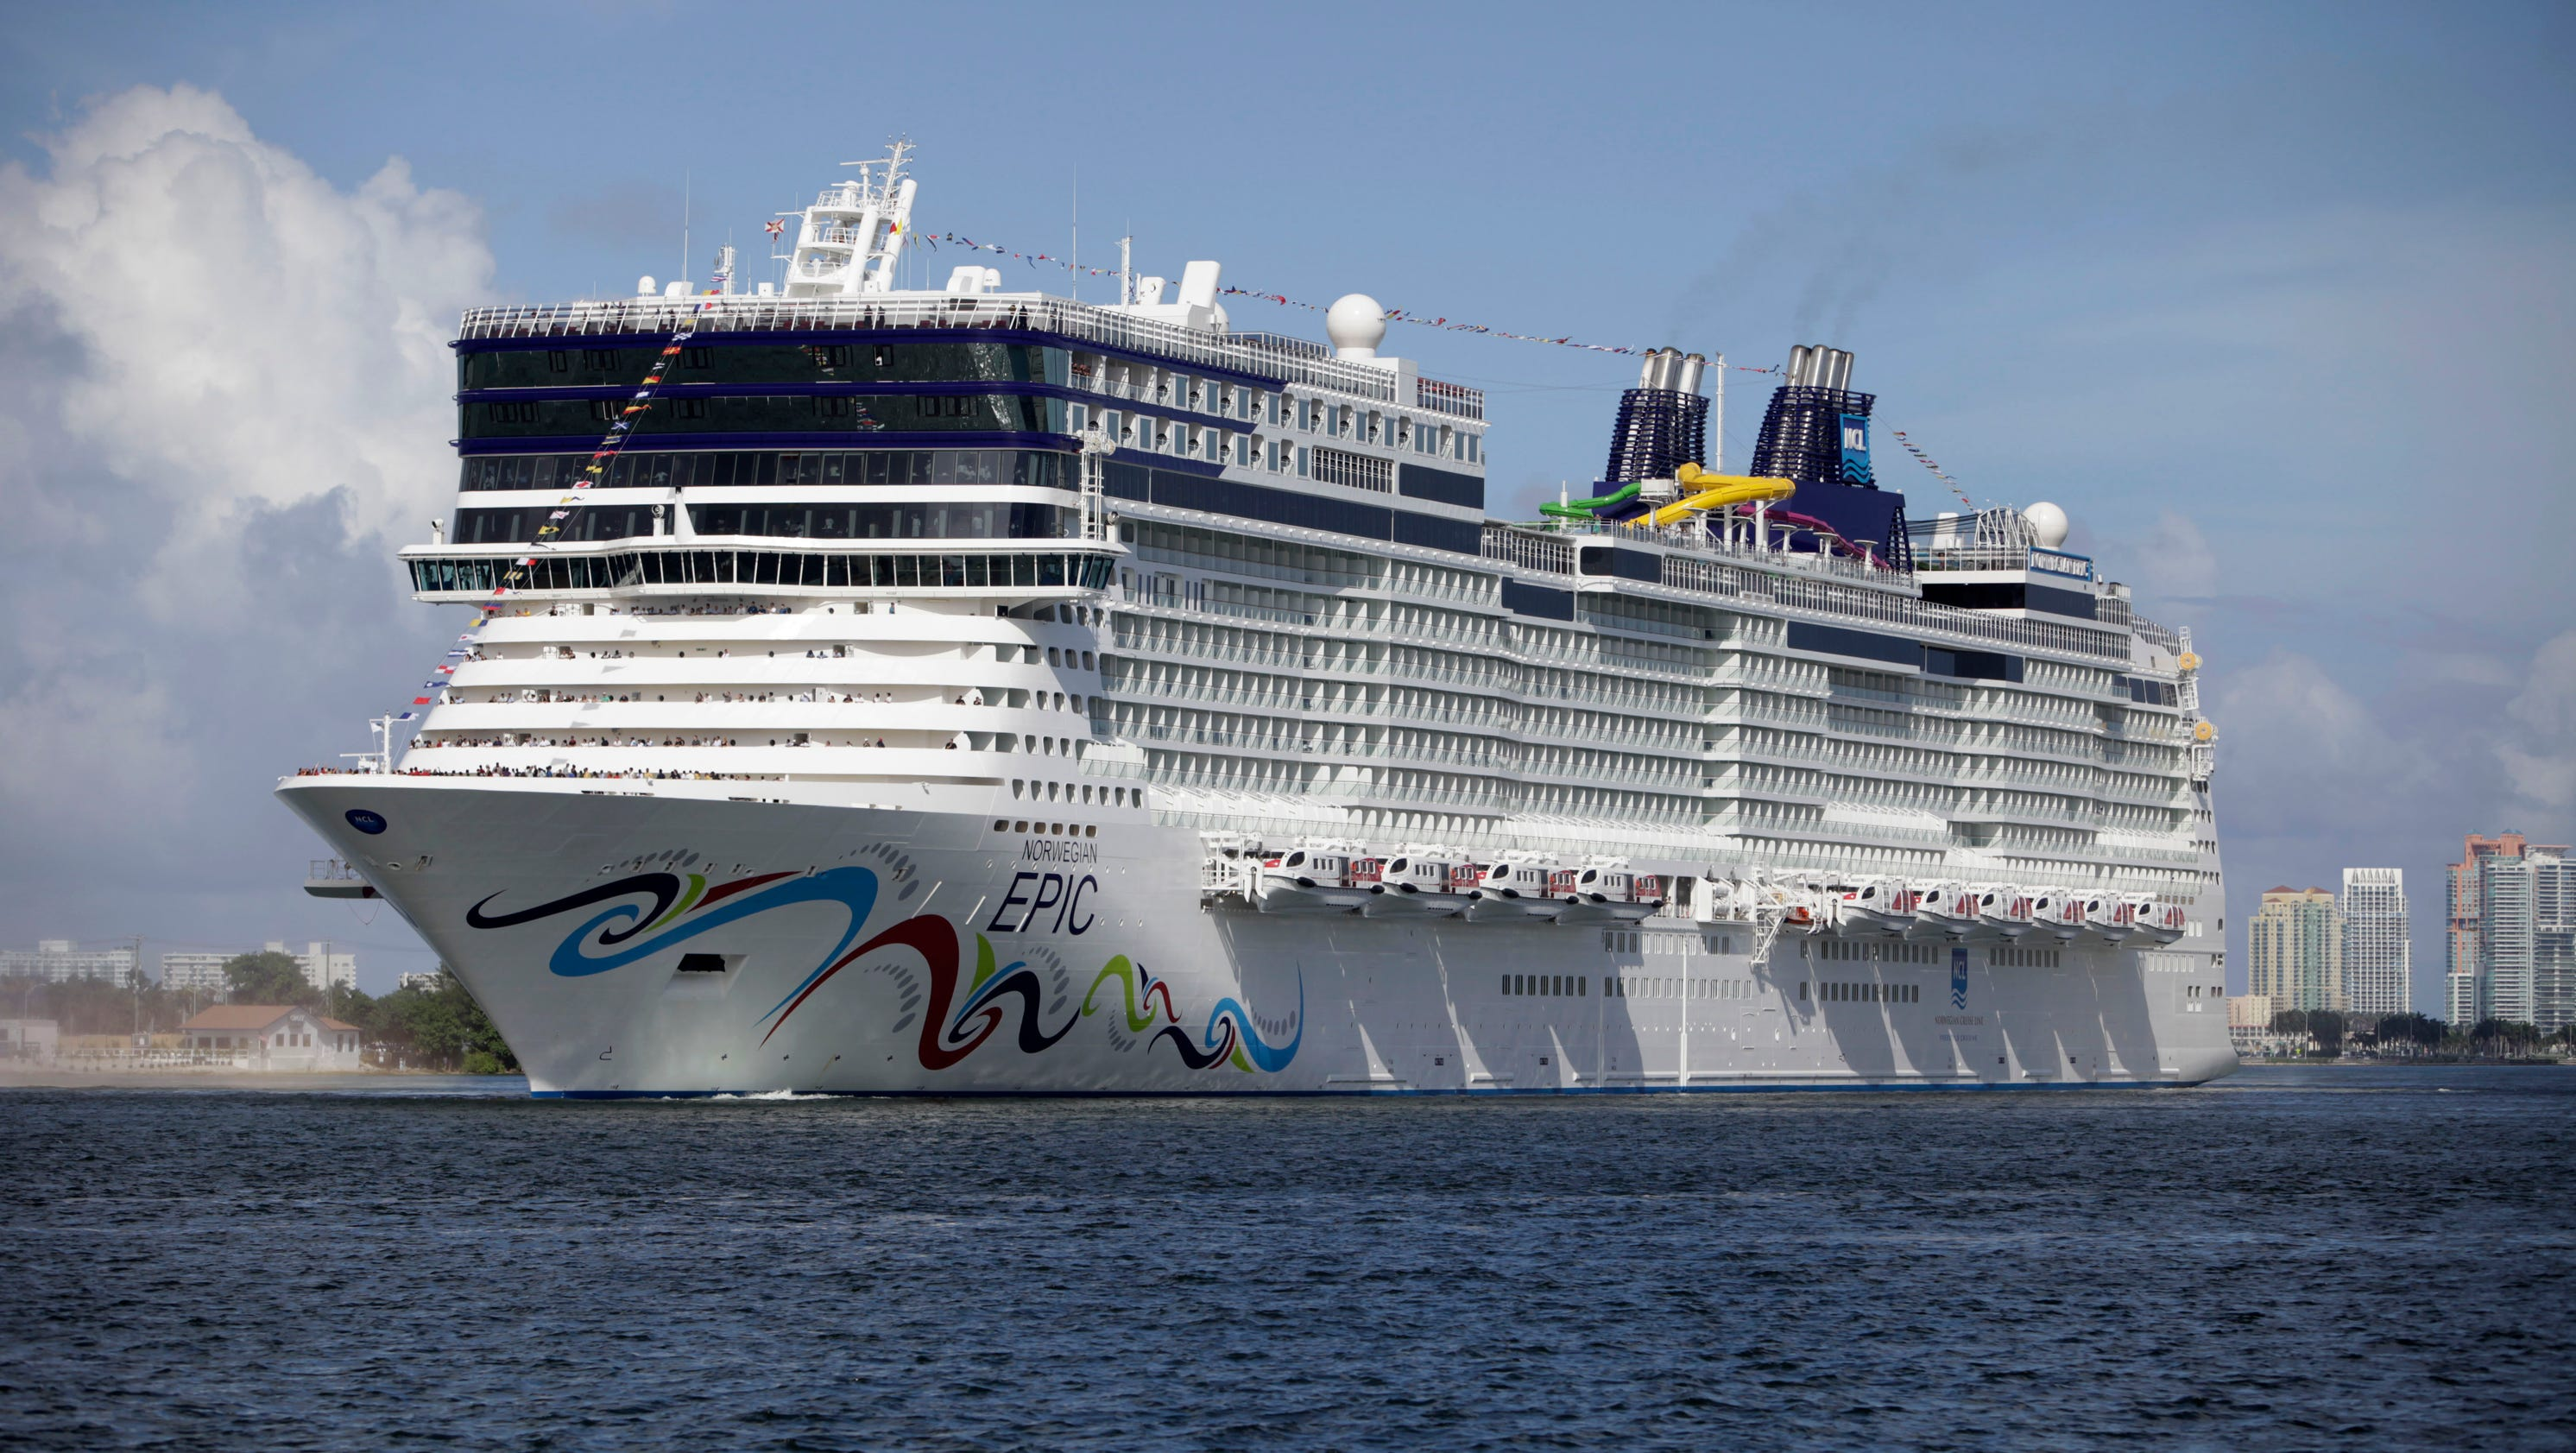 Giant Cruise Ship To Be Based Yearround In Europe